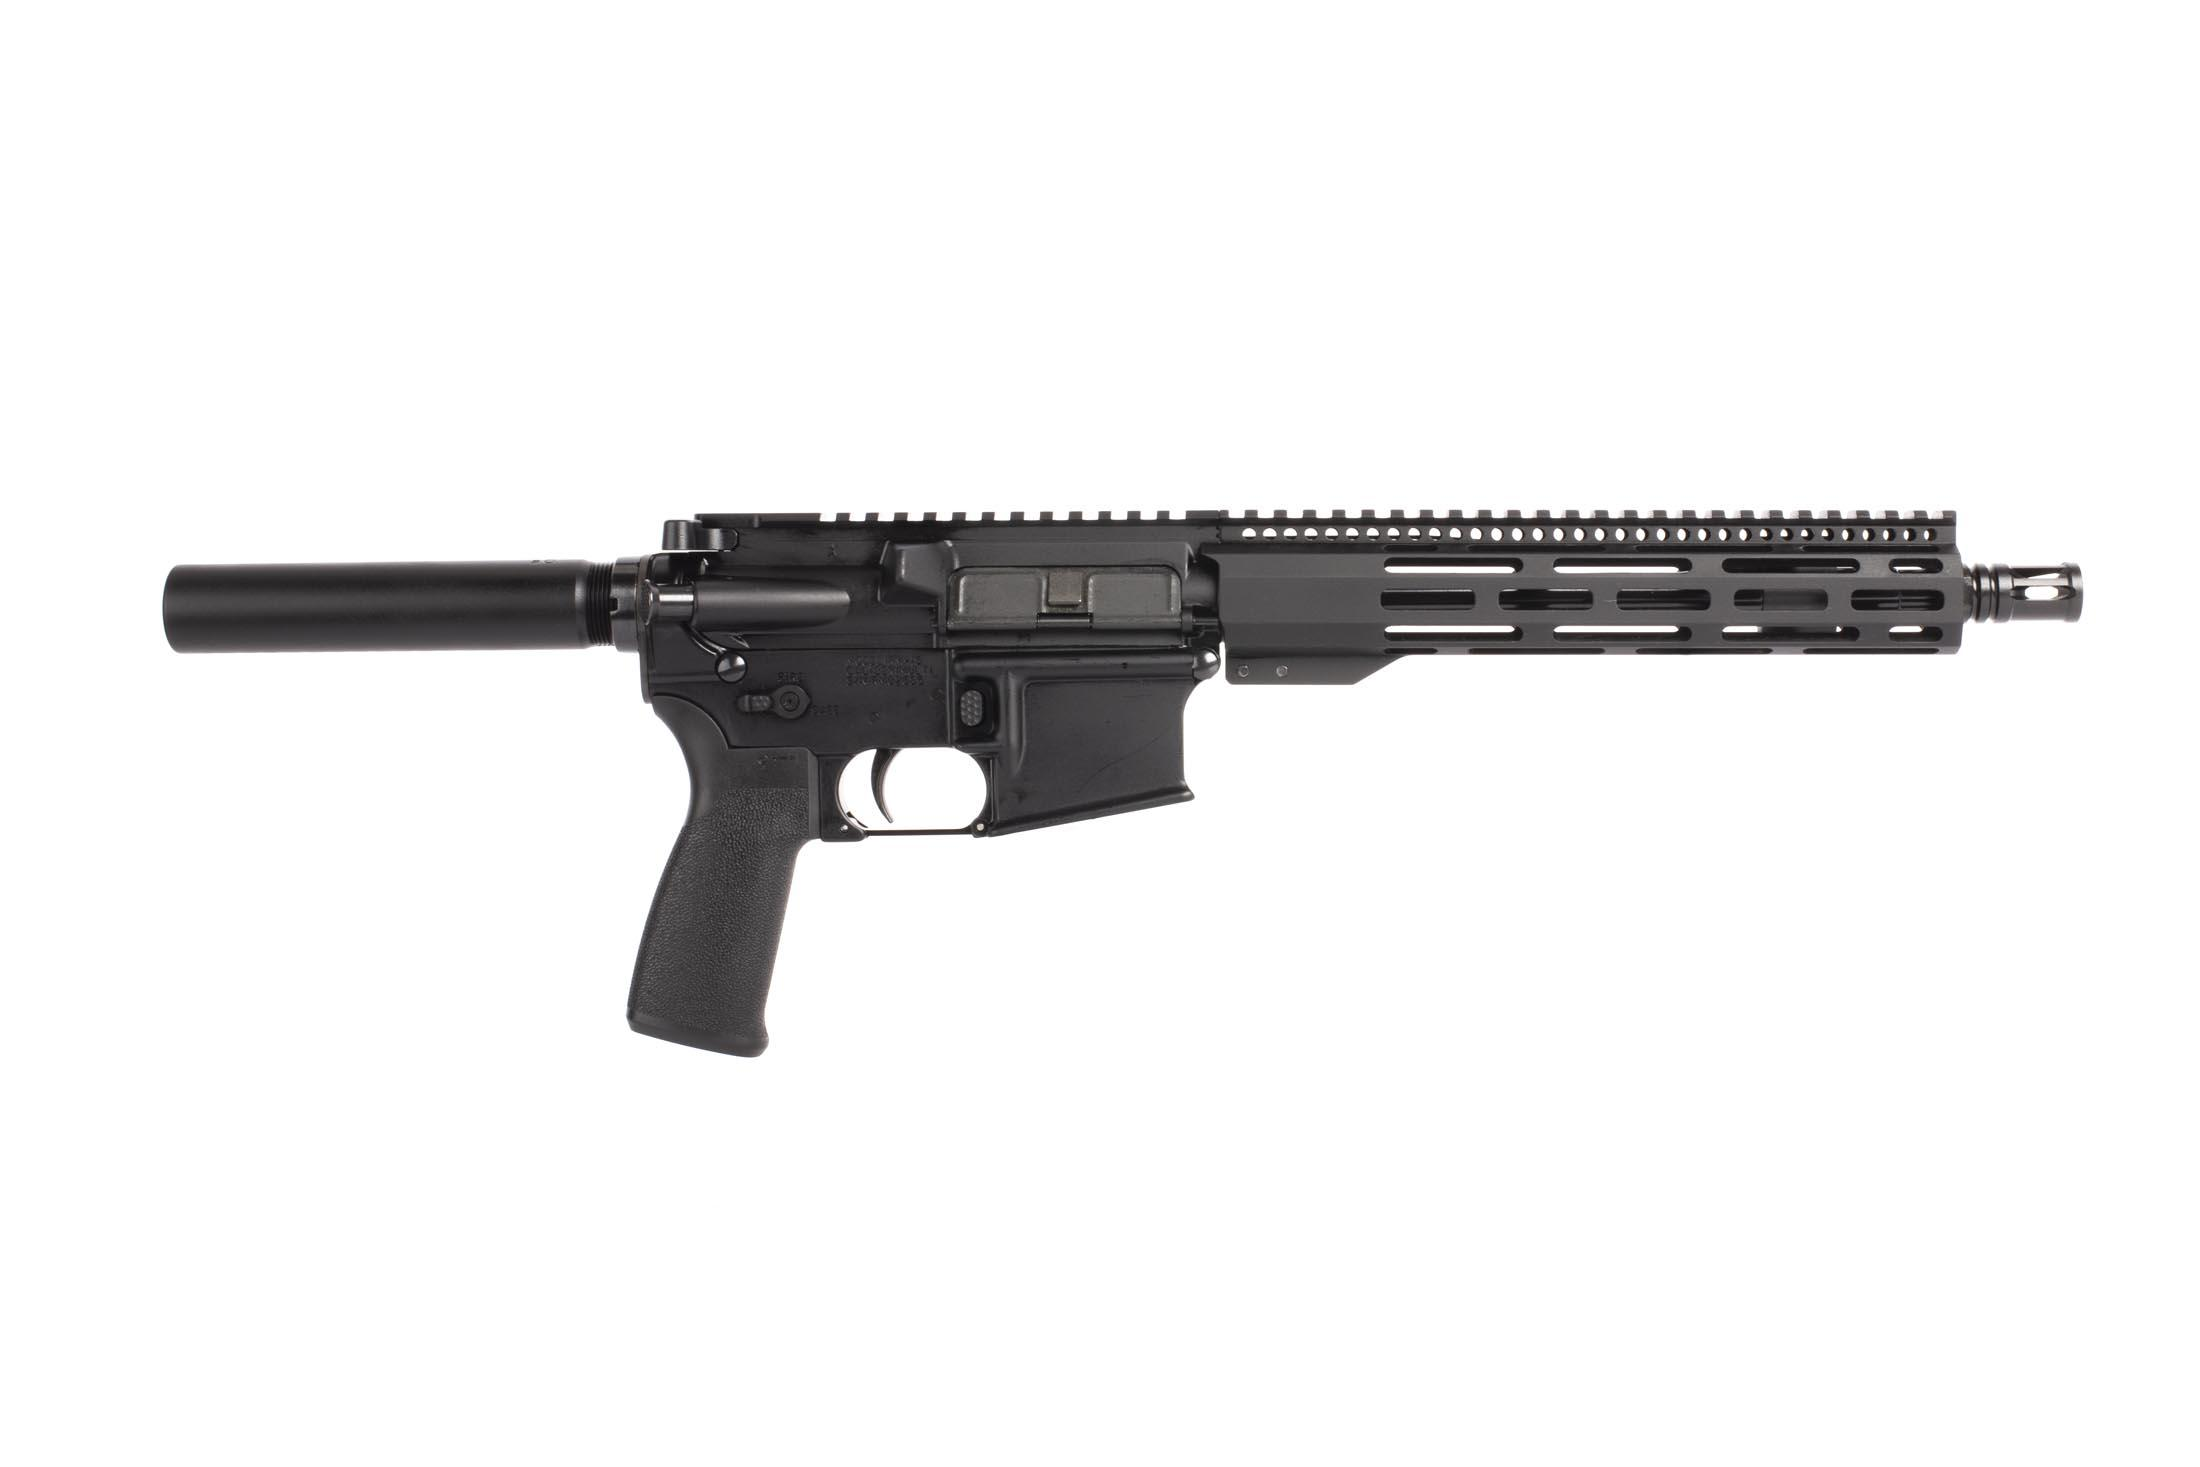 Radical Firearms 556 nato 10.5 inch AR-15 pistol has a lightweight M-LOK handguard and mission first pistol grip